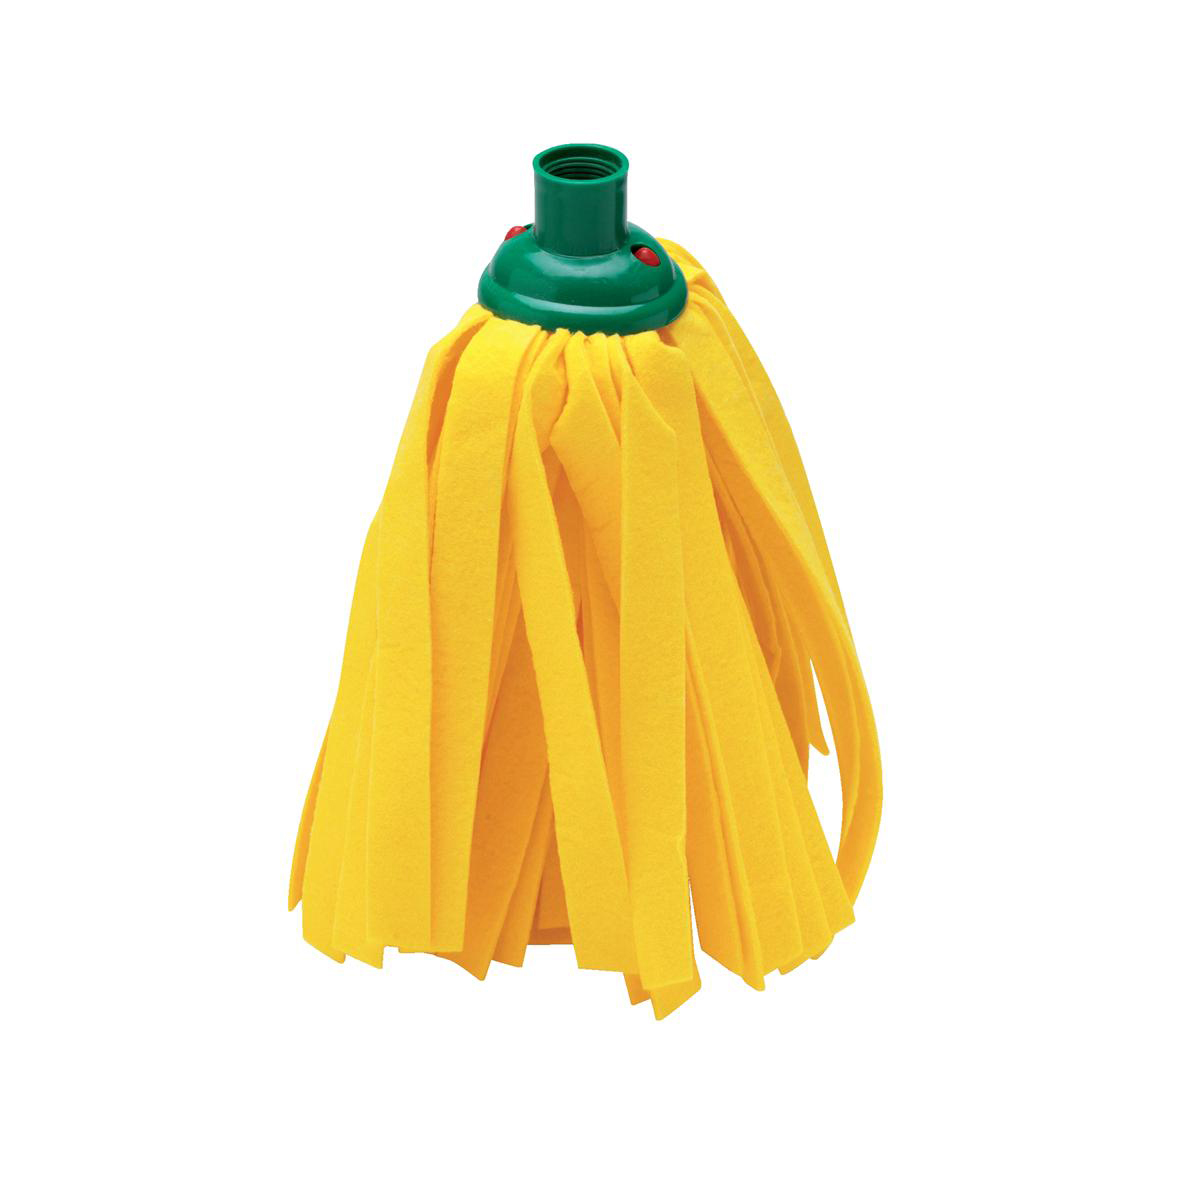 Mop heads Addis Cloth Mop Head Refill Thick Absorbent Strands and Green Socket Ref 510524